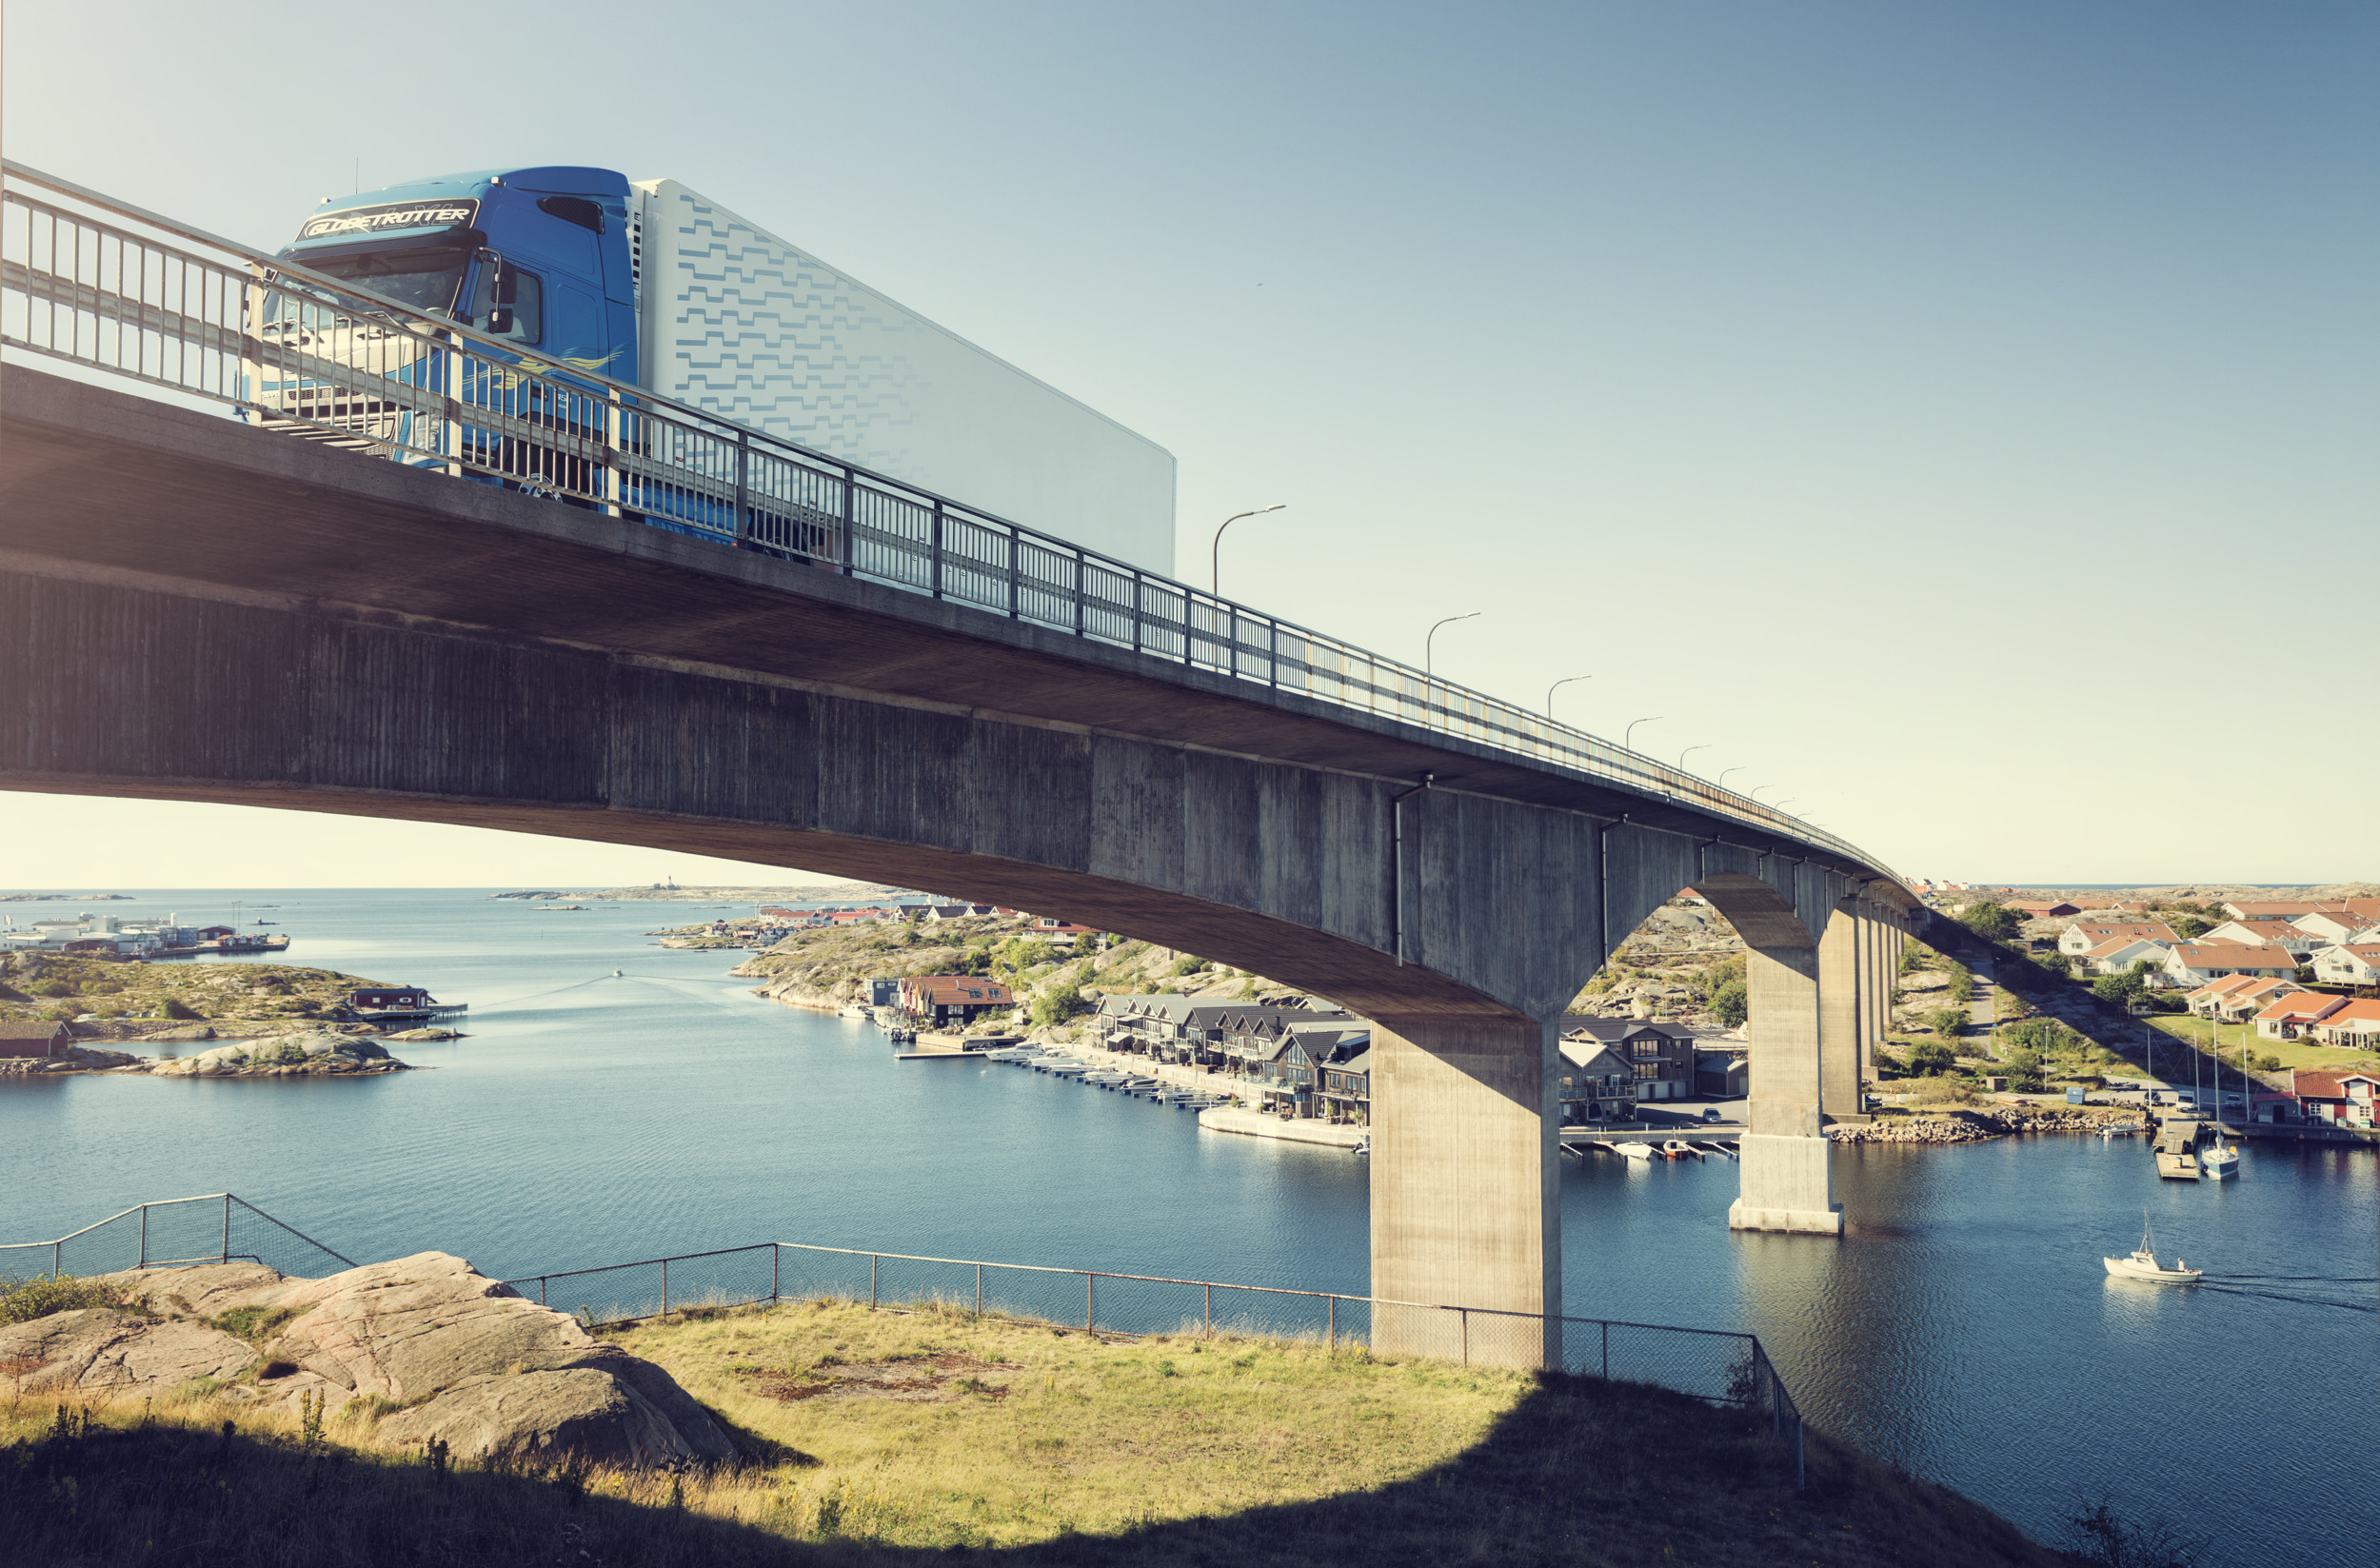 truck, blue truck, bridge, water, city, transportation, travek, volvo, peaceful